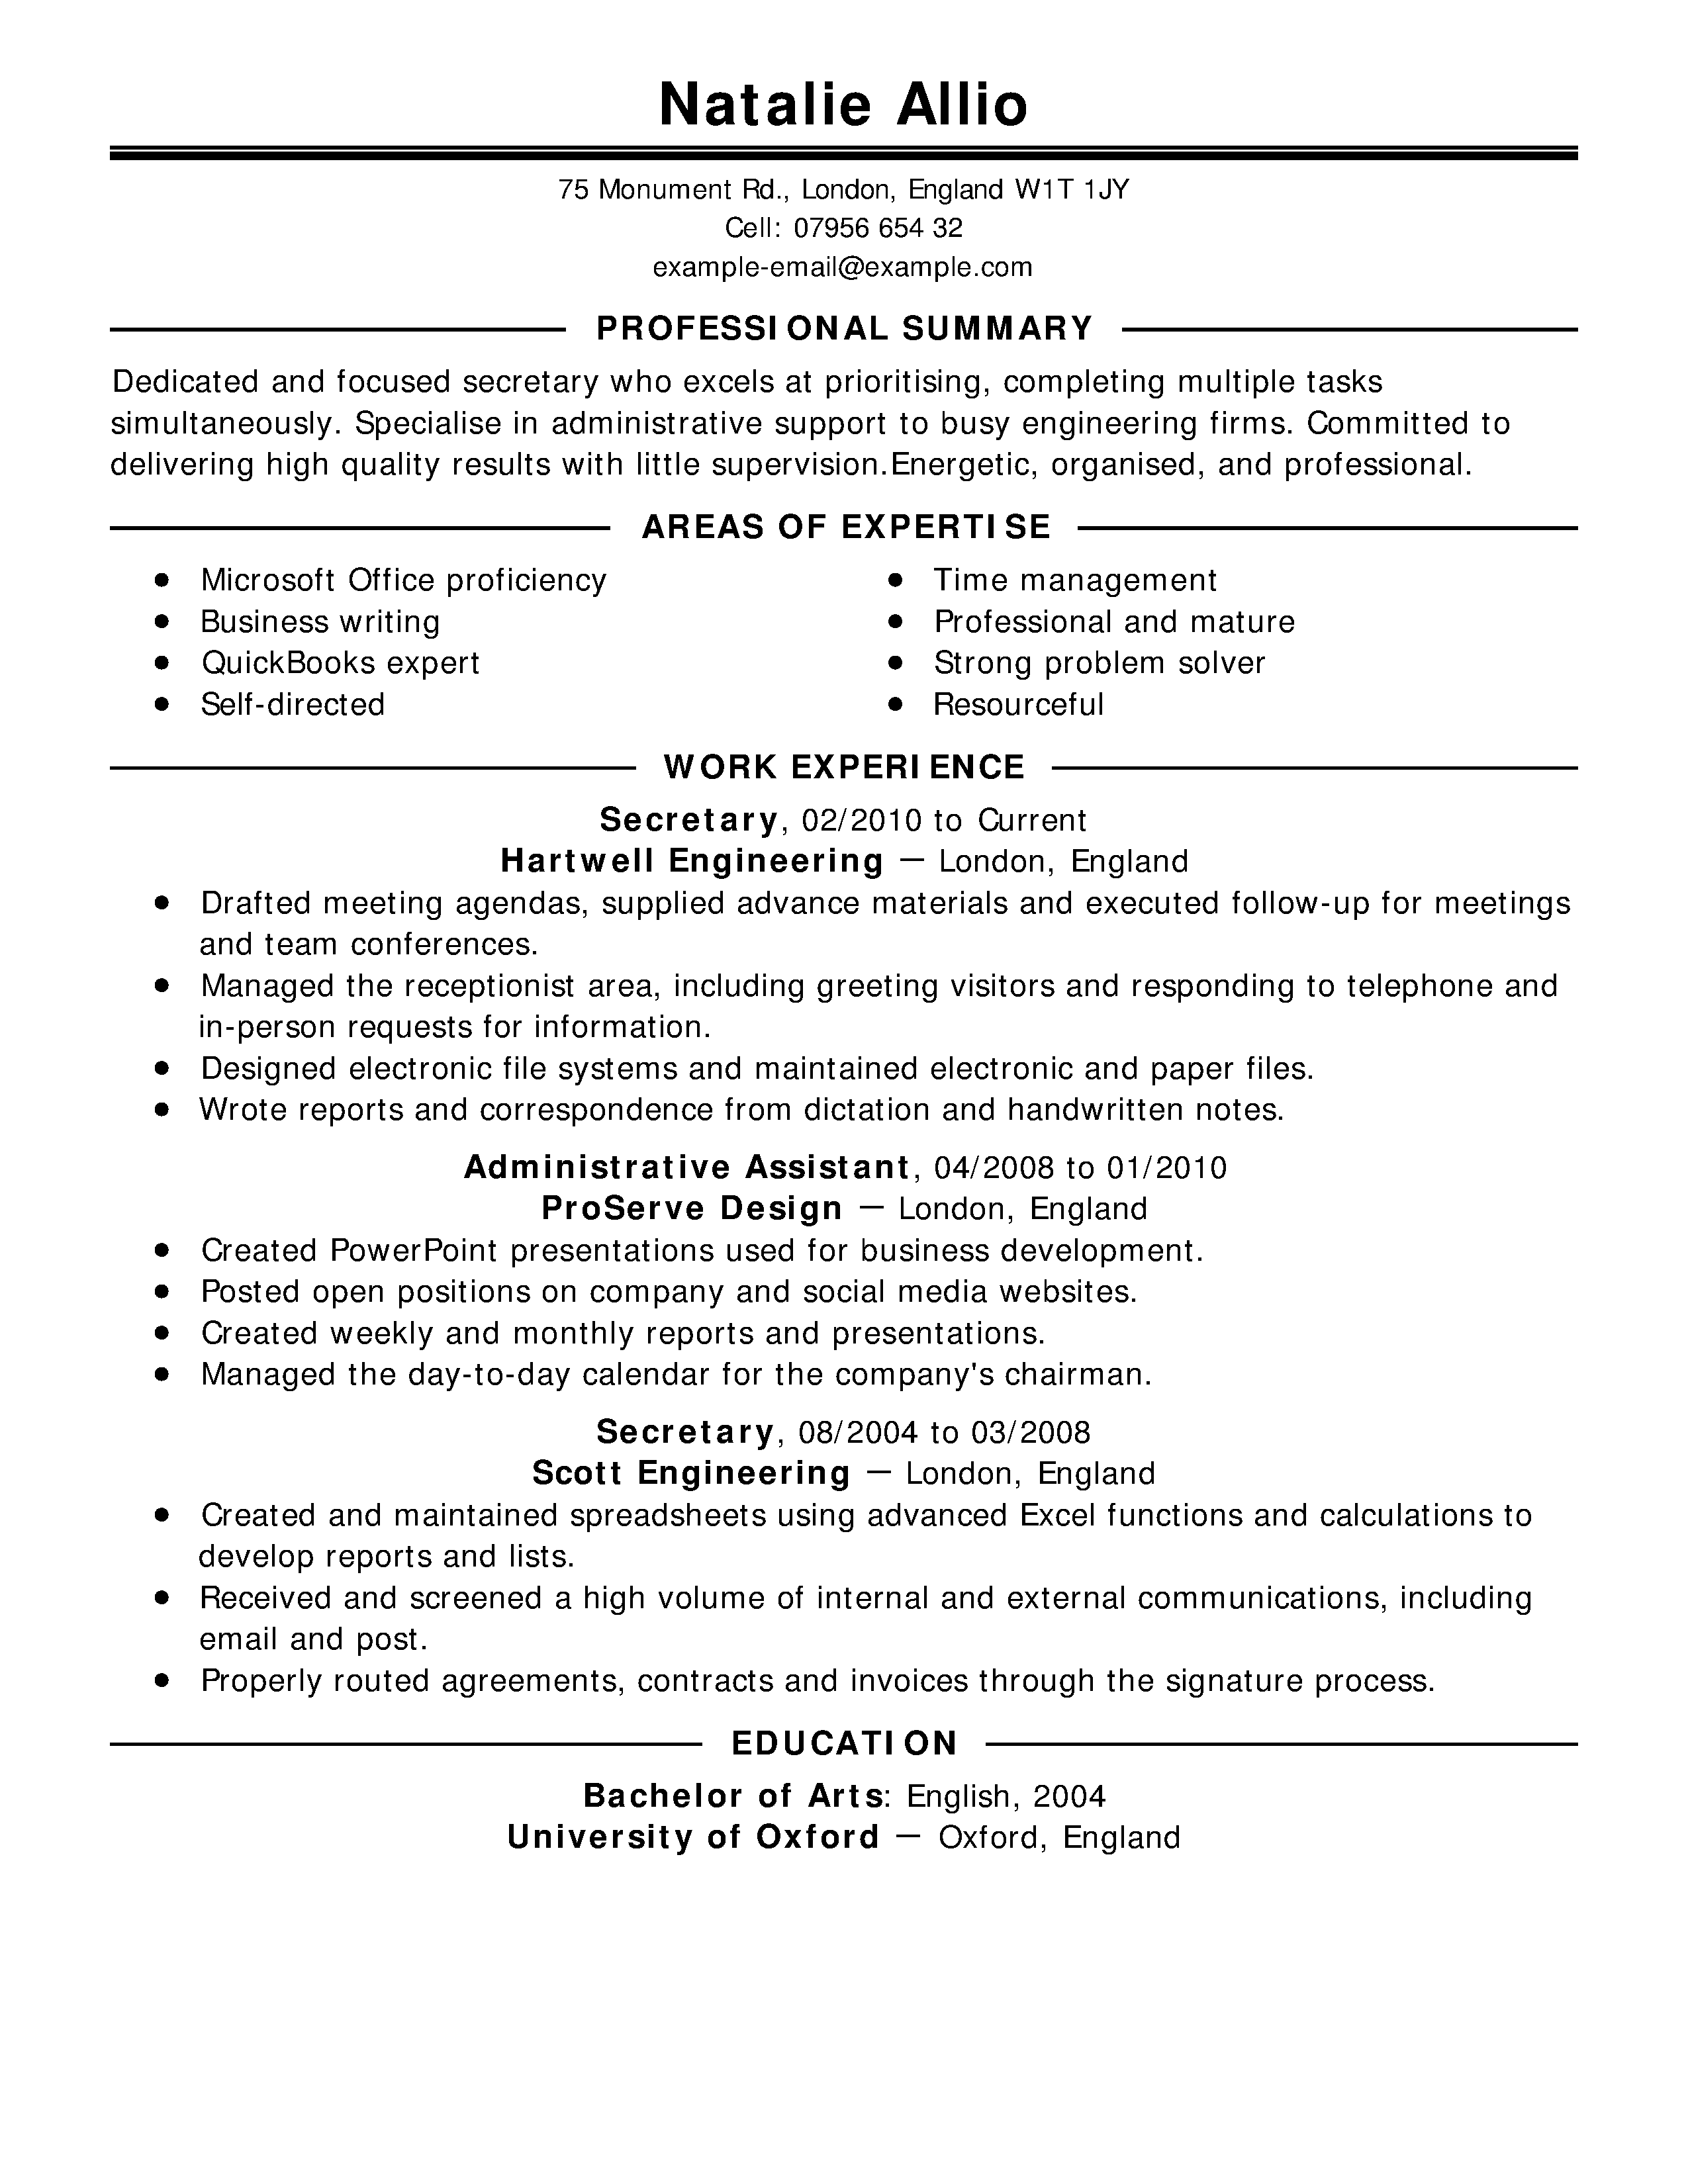 examples of resume for when u worked